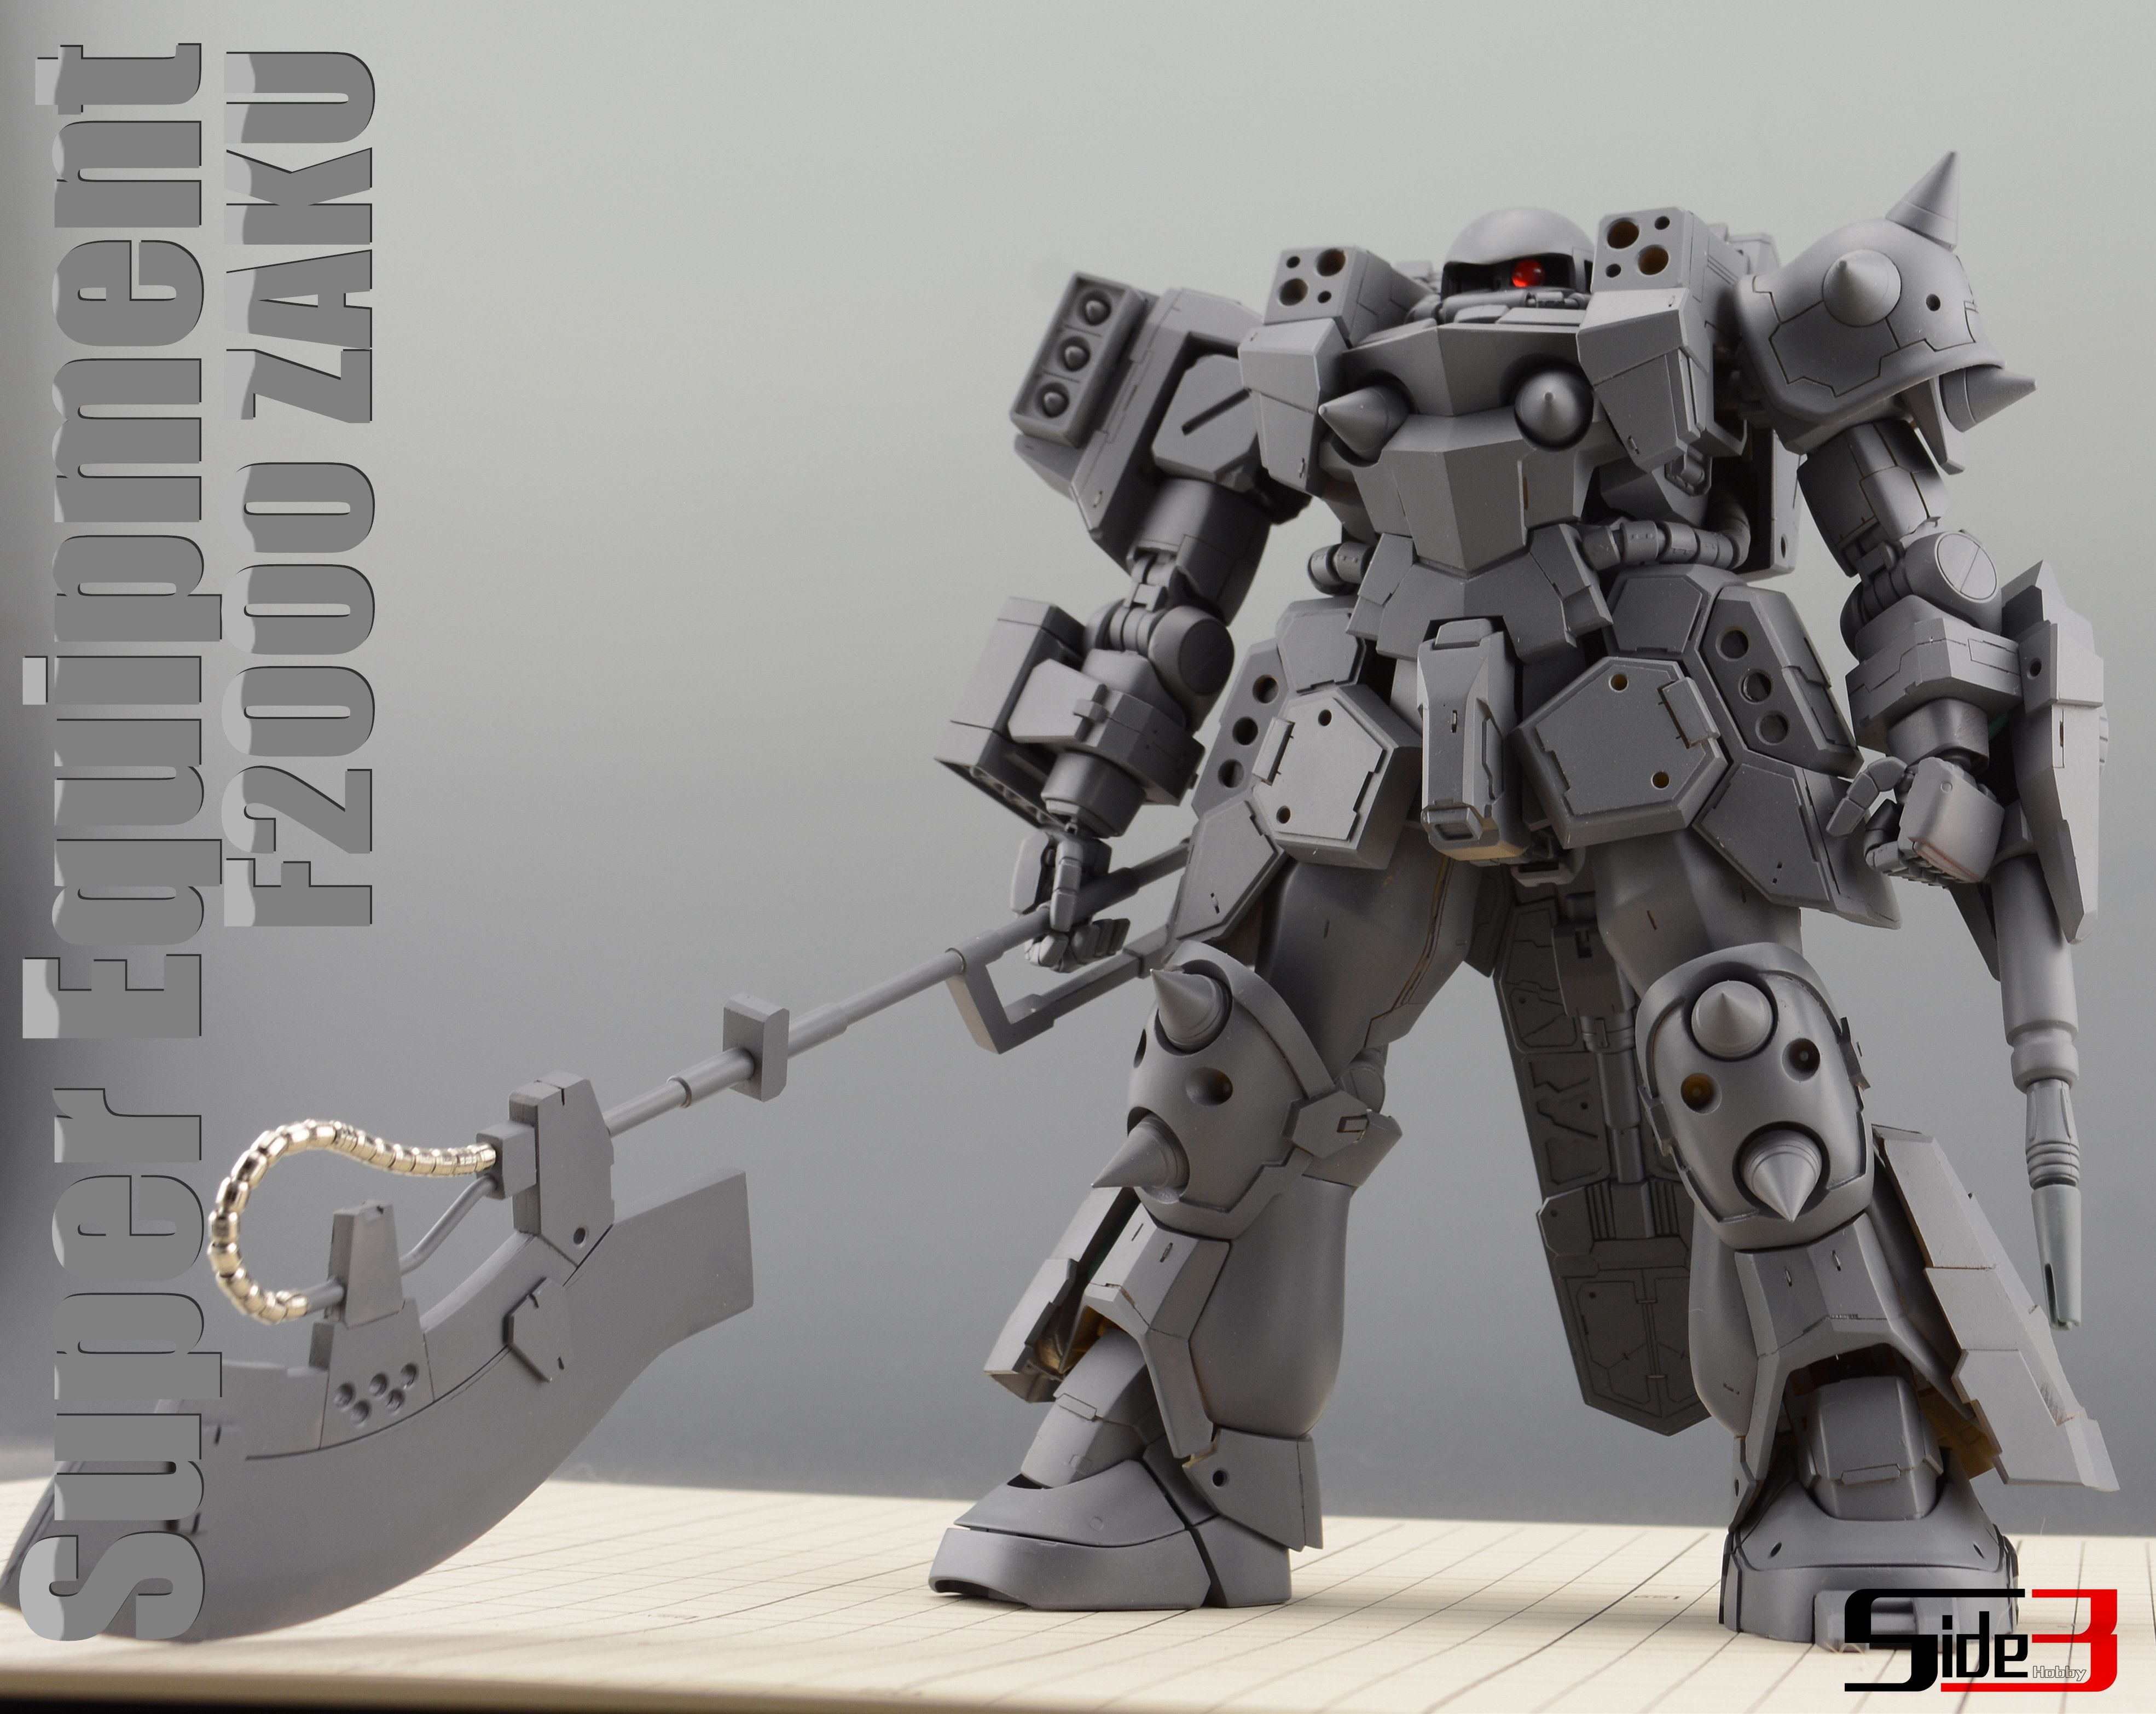 SIDE3 1/100 SUPER EQUIPMENT F2000 ZAKU RESIN CONVERSION KIT